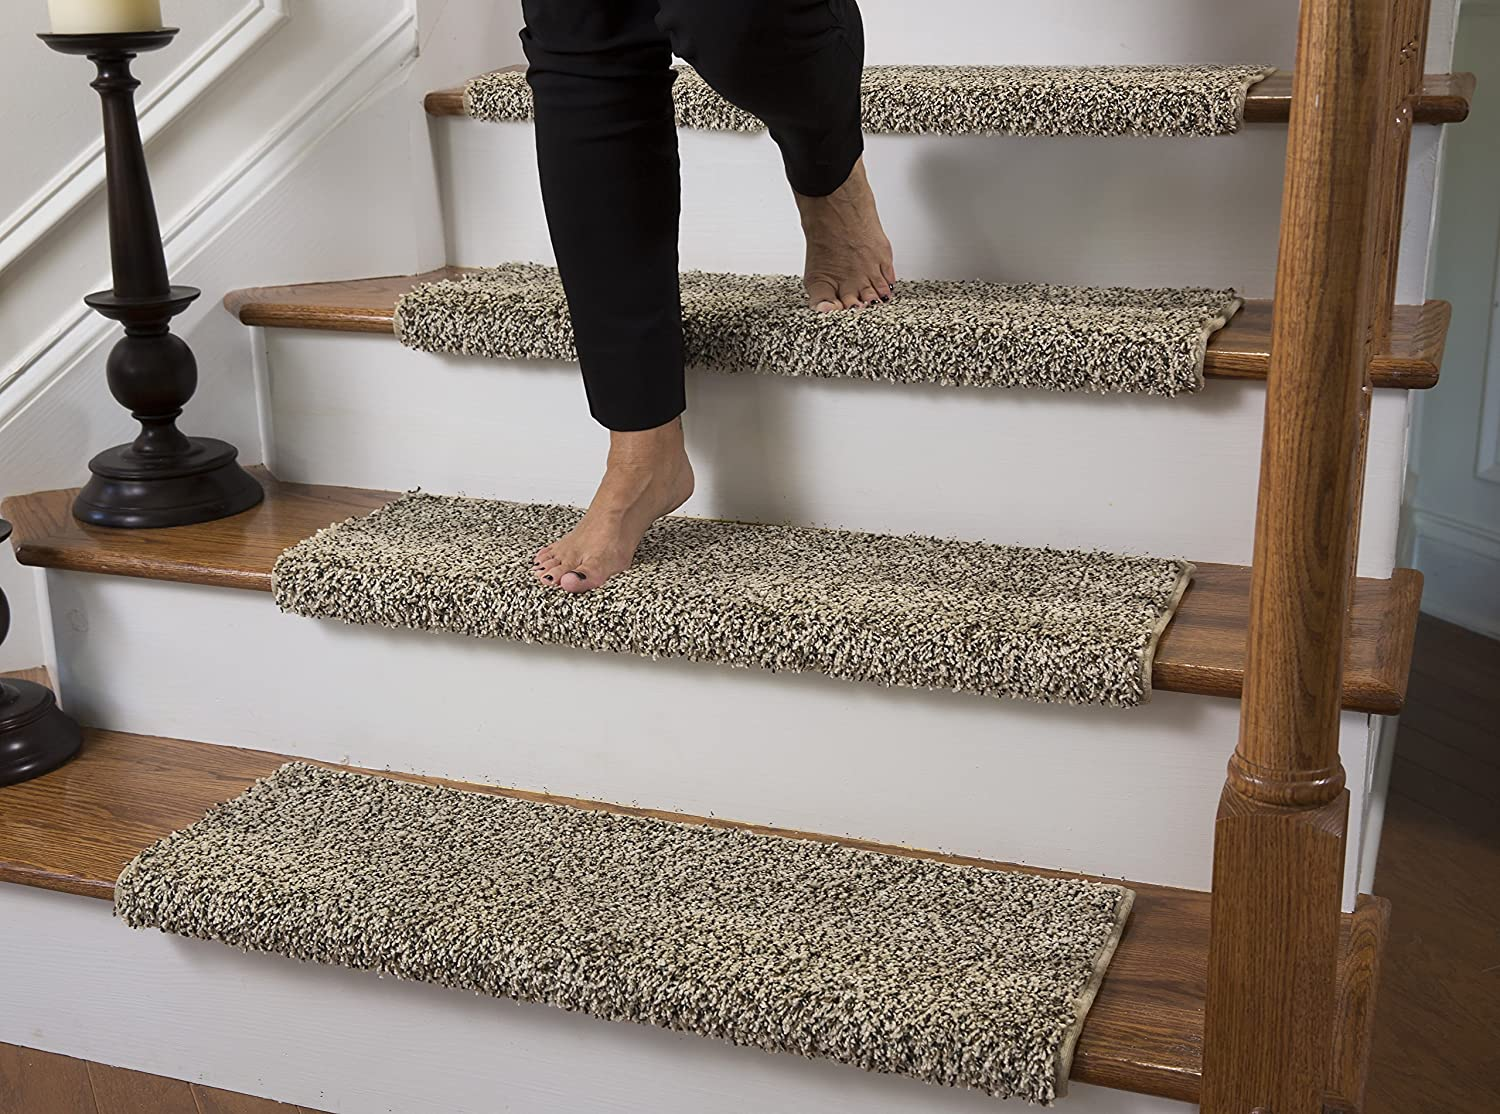 Carpet Stair Pads 14 Carpet Stair case Treads Dove Grey Stain Free